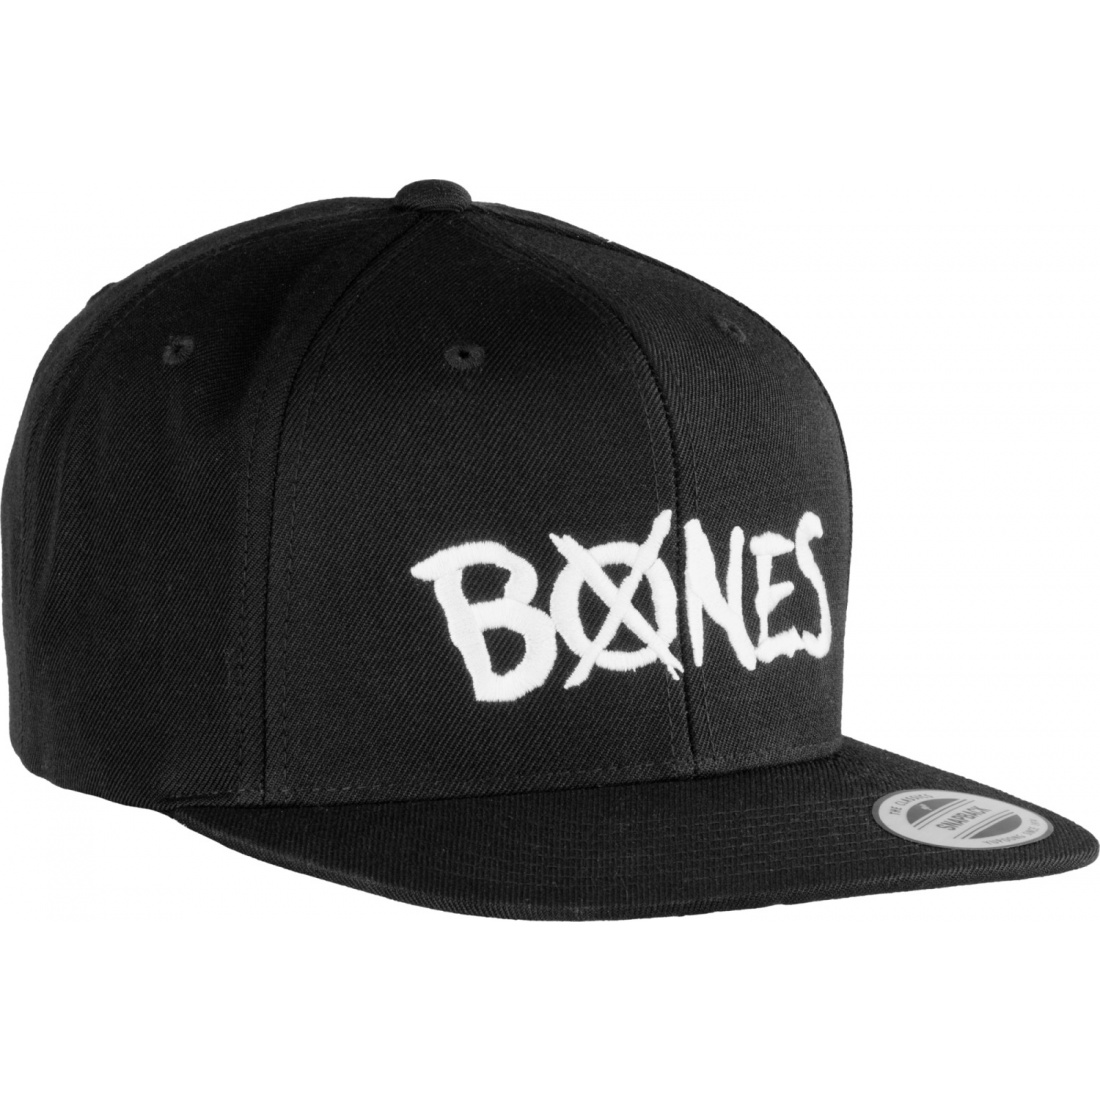 Bones Wool X Bones Snap Back Cap